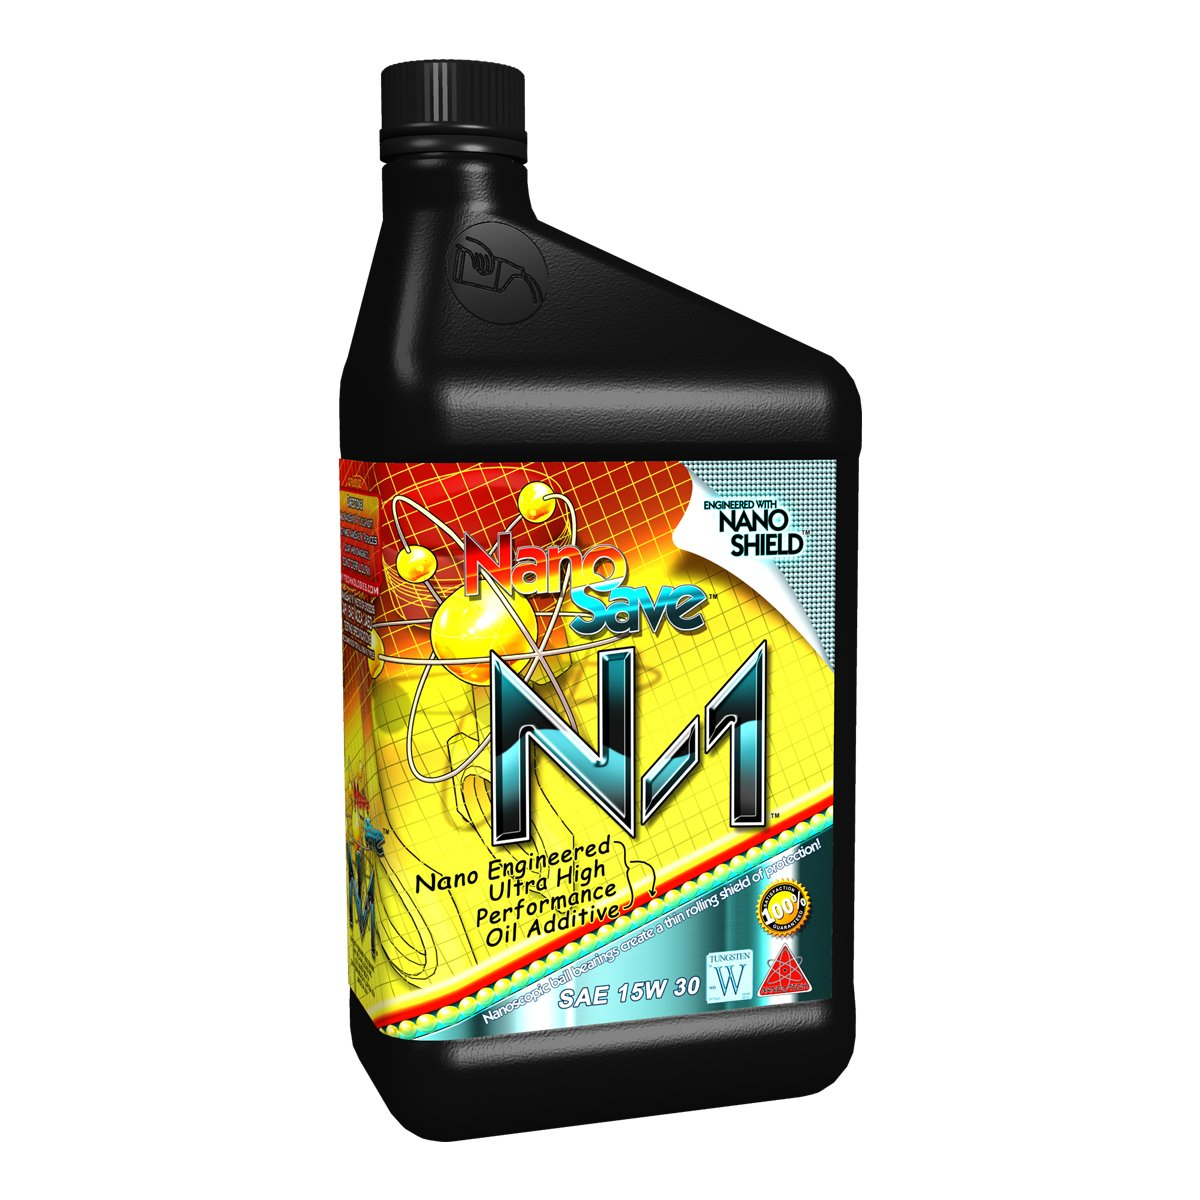 NanoSave N1 Nano-Engineered High Performance Engine Oil Additive - 1 Quart